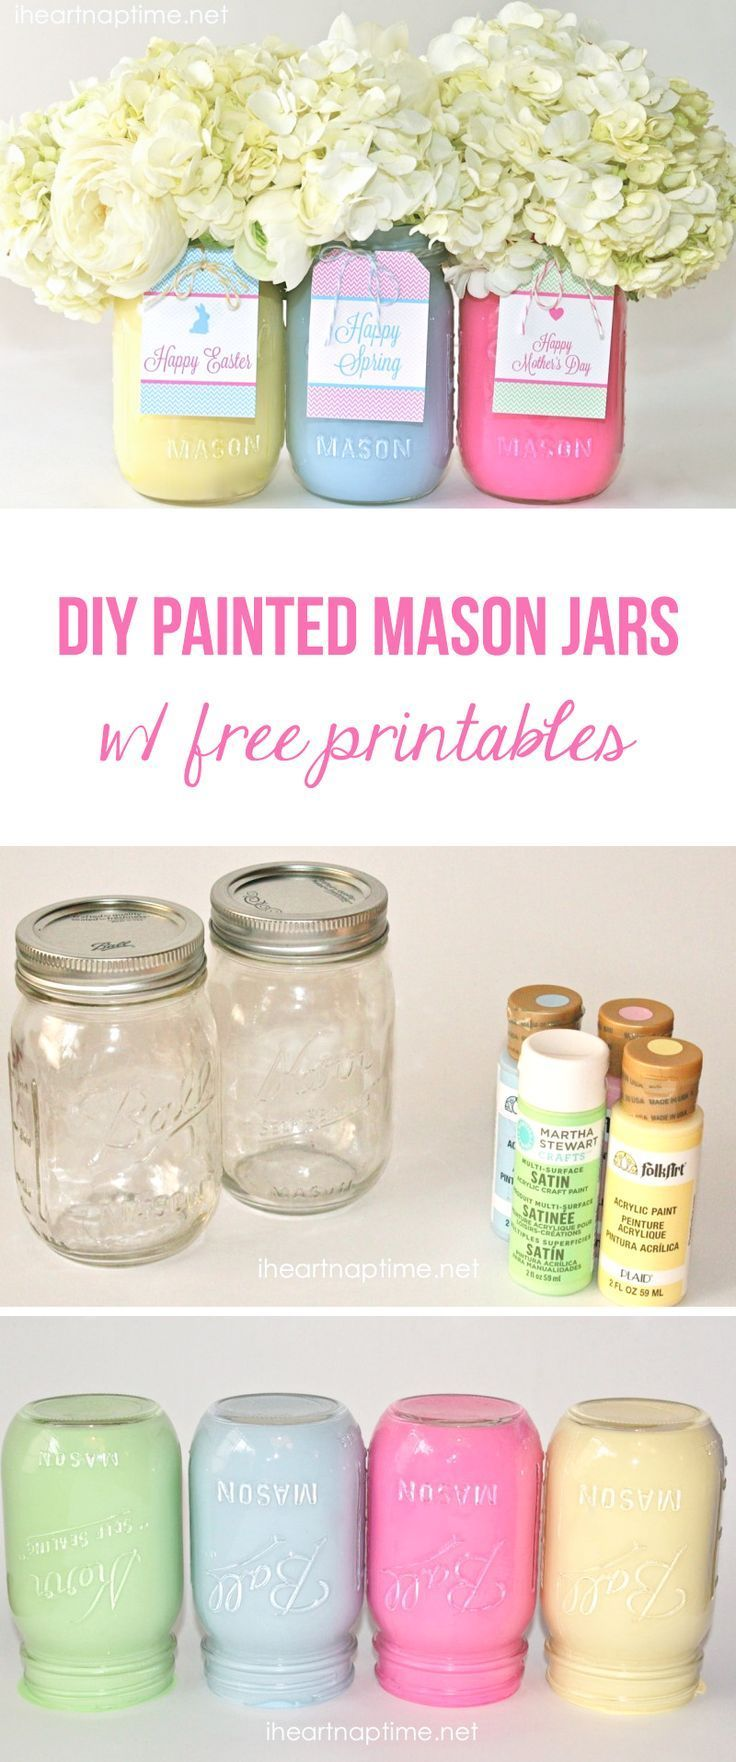 Best 375 life gift ideas ideas on pinterest easter gift ideas diy painted mason jars with free tags these make a cute and inexpensive gift for negle Images